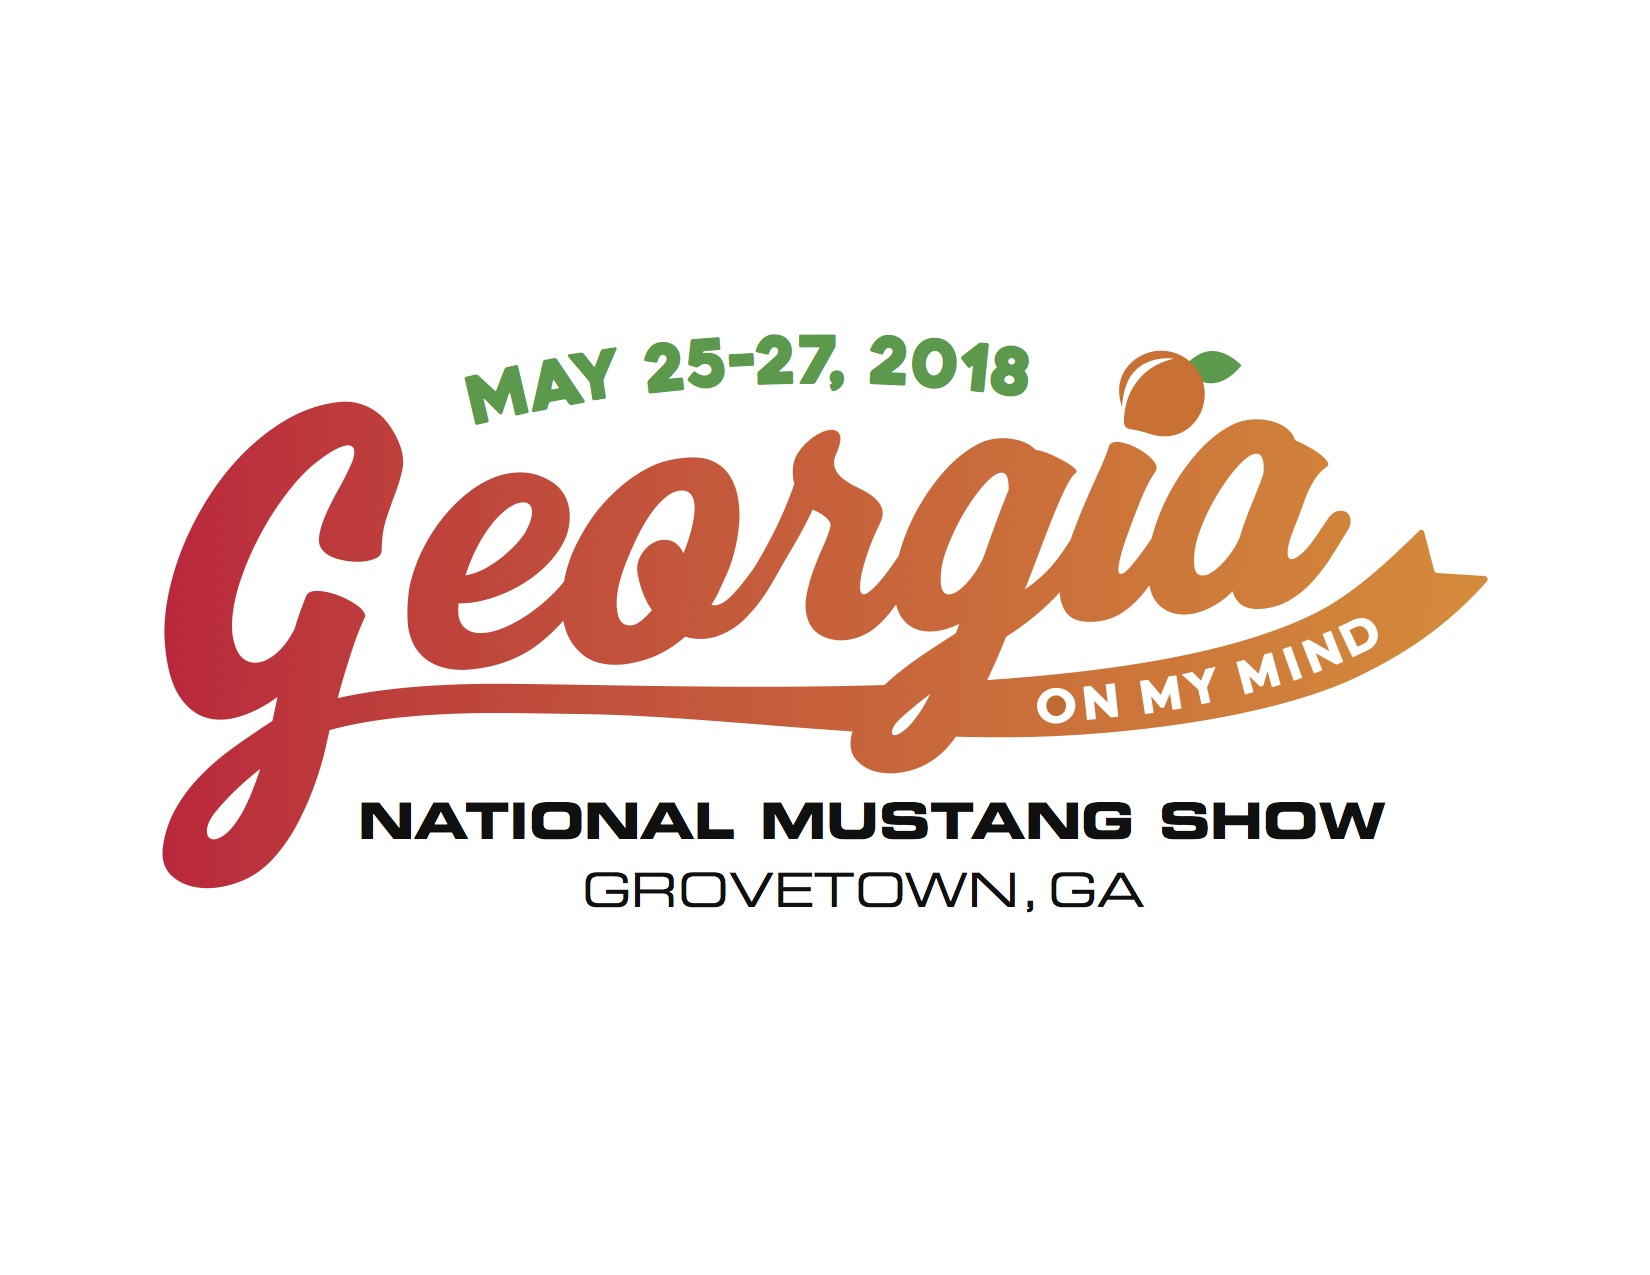 Georgia On My Mind – MCA National Mustang Show, 5/25/18 – 5/27/18